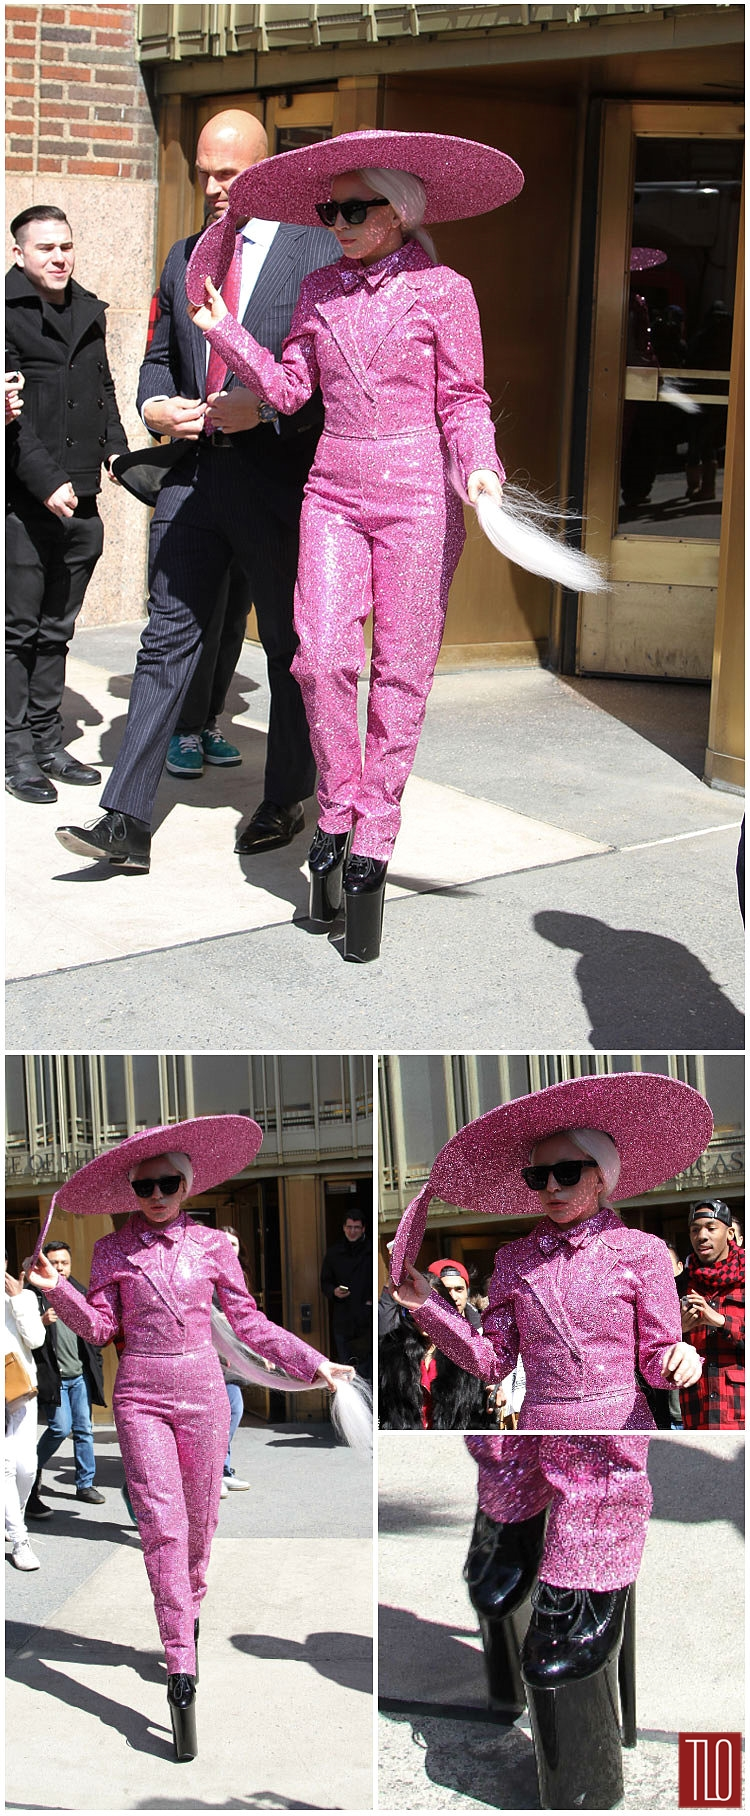 Lady-Gaga-GOTS-NYC-WPO-Tom-Lorenzo-Site-TLO (3)